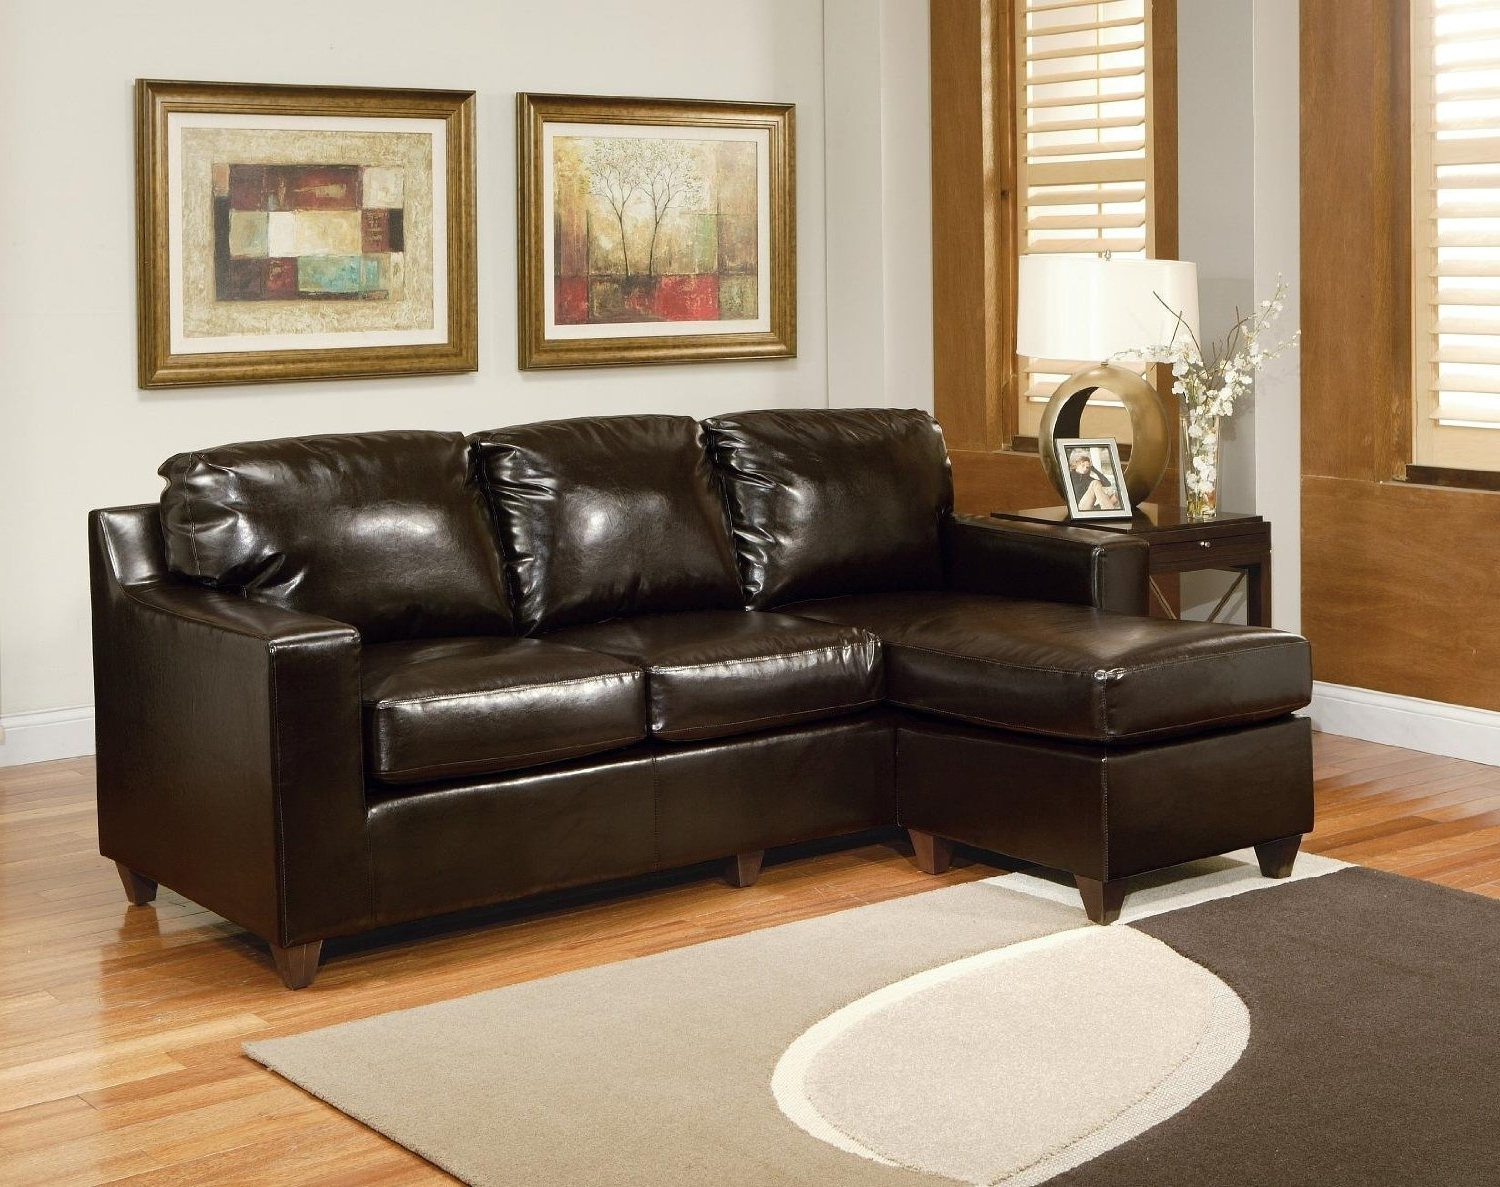 2019 Sectional Sofa For Small Spaces (View 2 of 20)